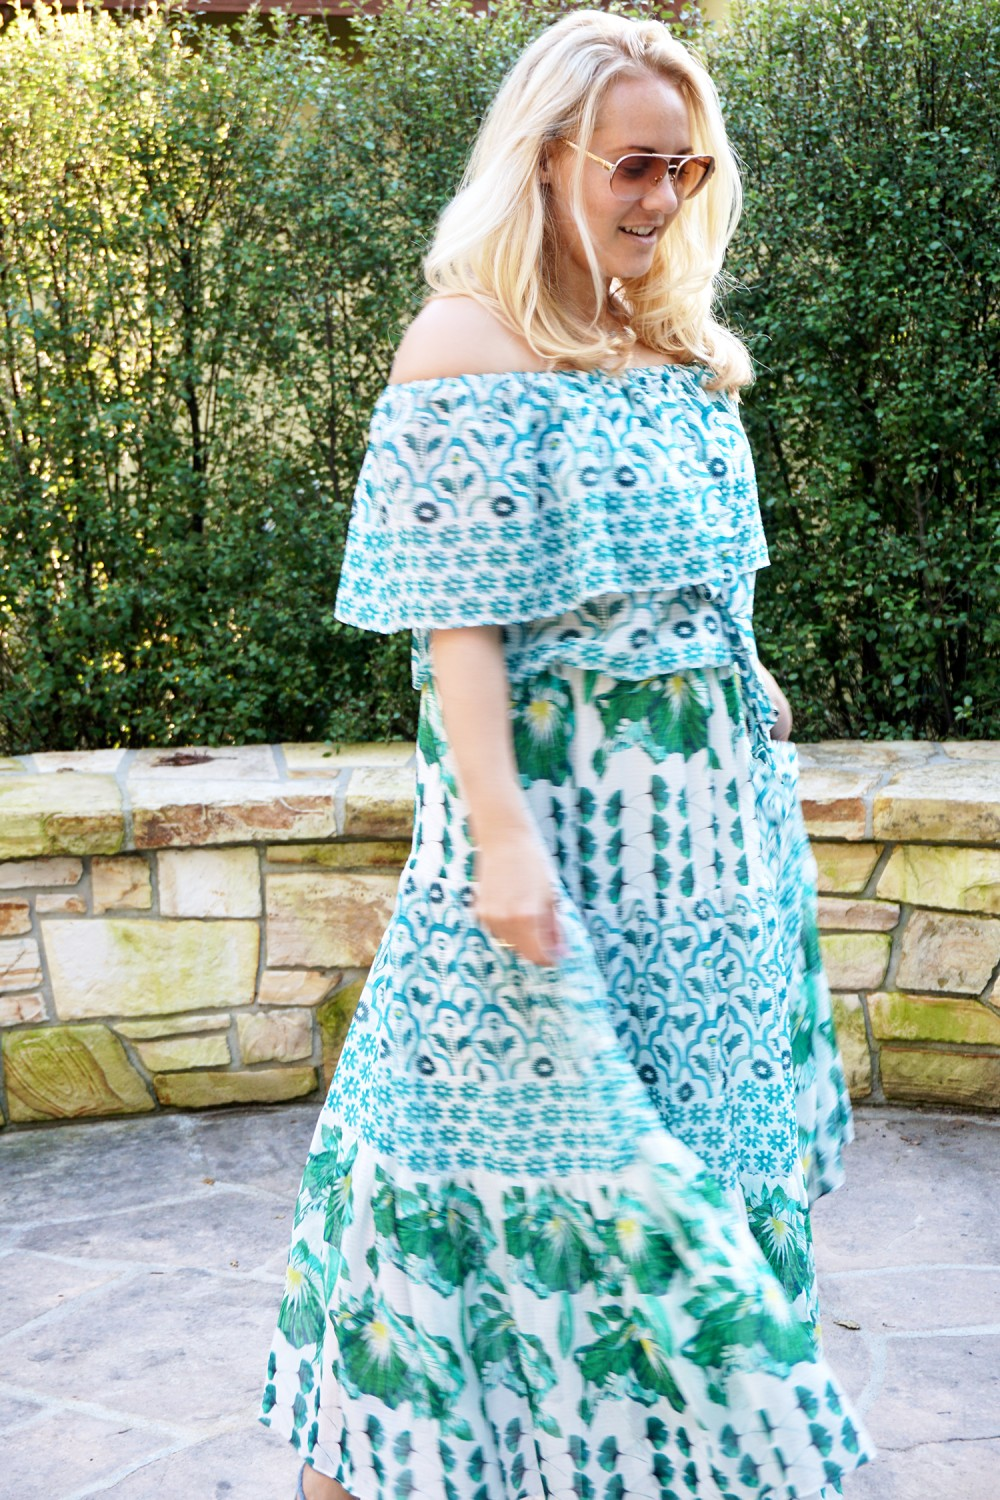 Off The Shoulder Maxi Dress-Temperley London-Outfit Inspiration-Wine Tasting-Visit Carmel by the Sea-Have Need Want 3